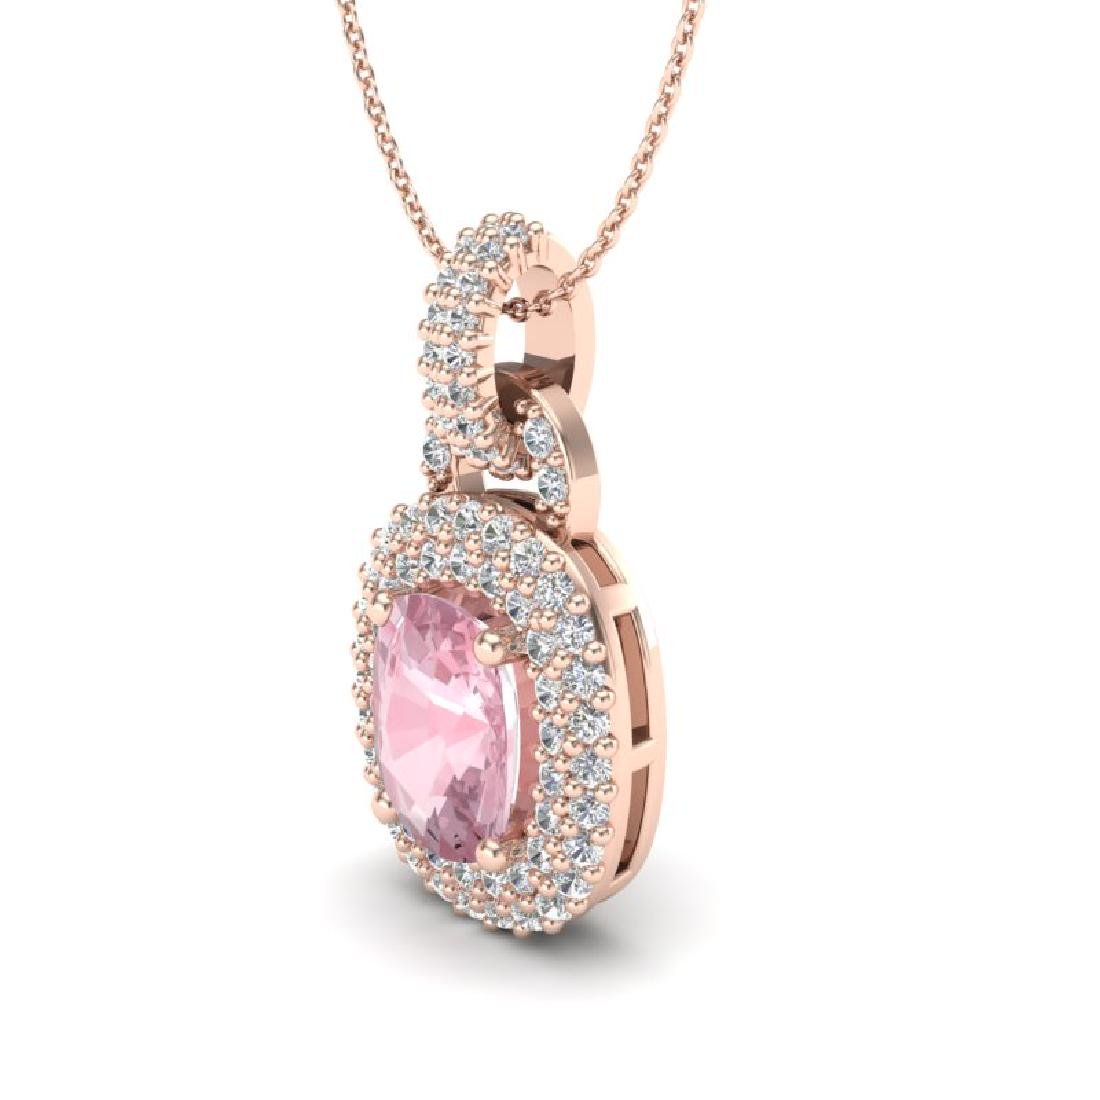 2.50 CTW Morganite & Micro Pave VS/SI Diamond Necklace - 2